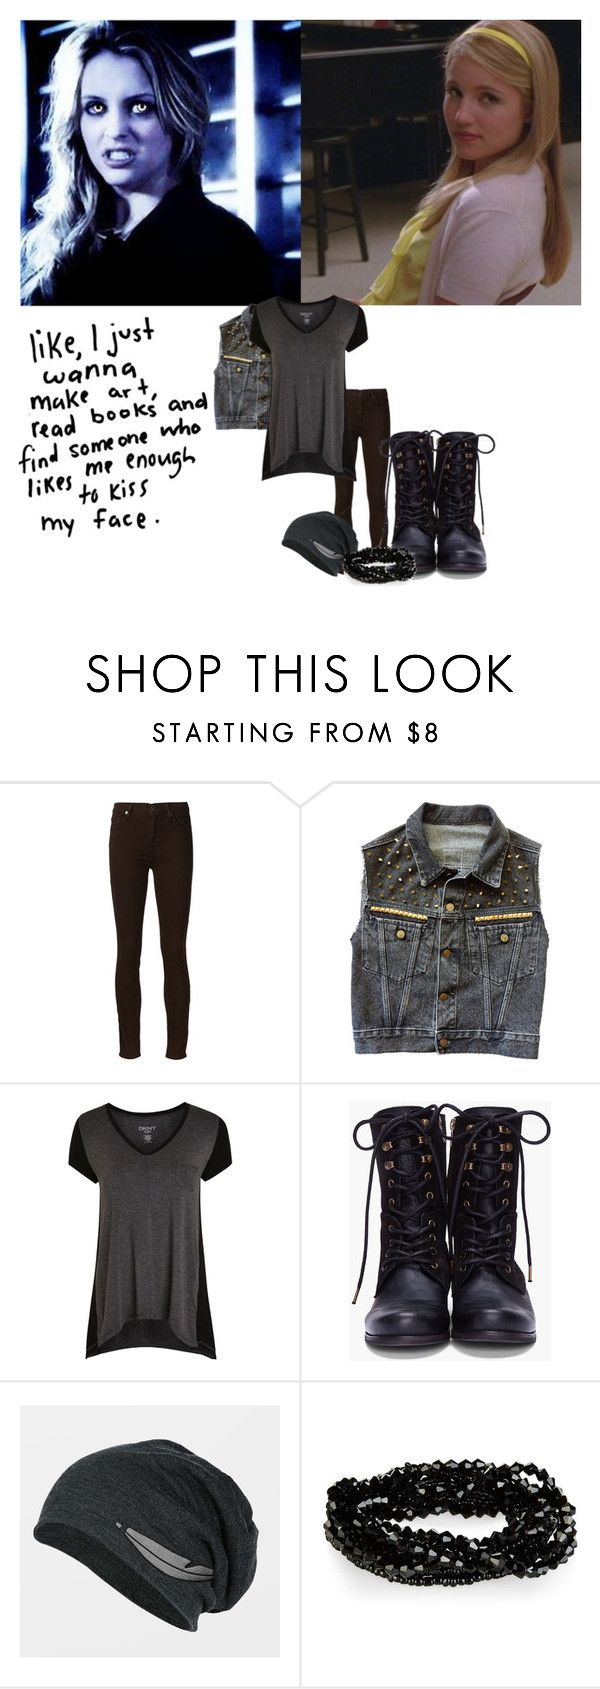 """Erica Reyes & Avalon (Song: Red by Taylor Swift)"" by grandmasfood ❤ liked on Polyvore featuring 7 For All Mankind, DKNY and Diesel"